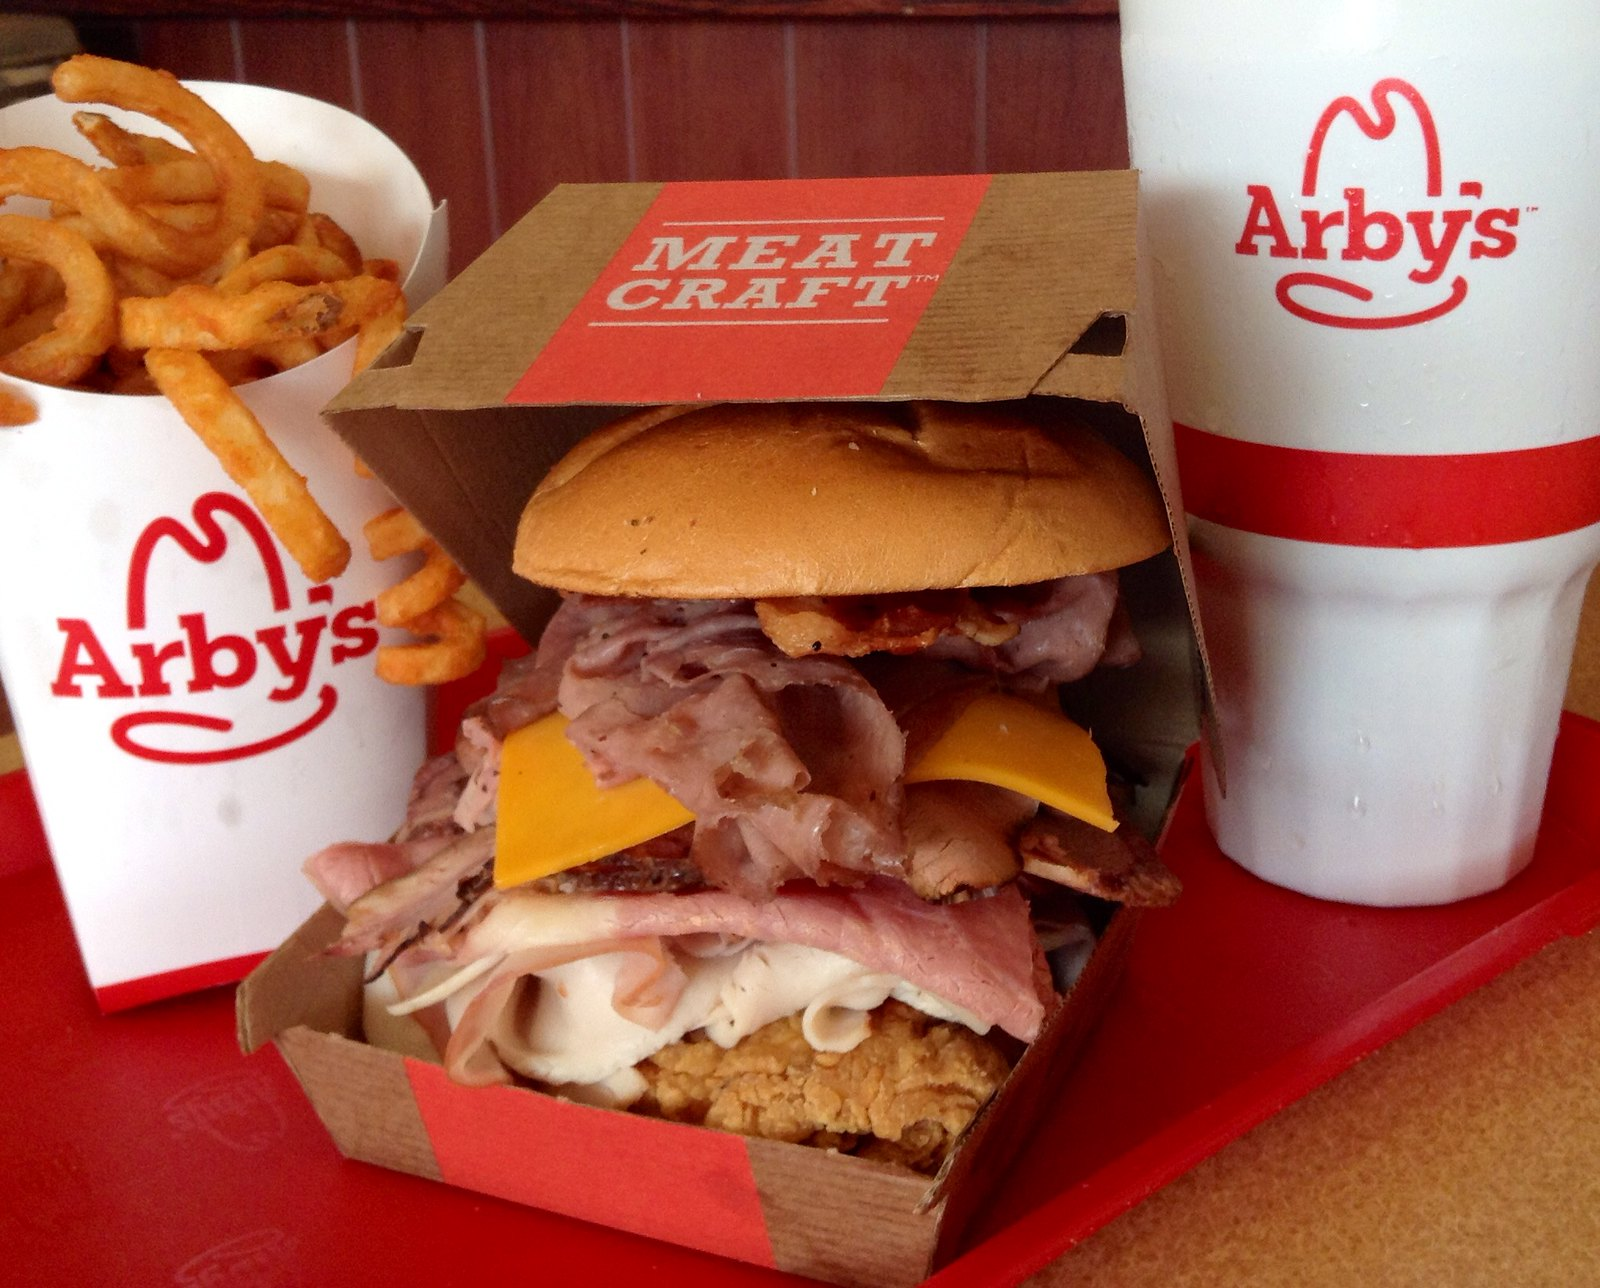 Arby's sandwich, fries and cup of drink